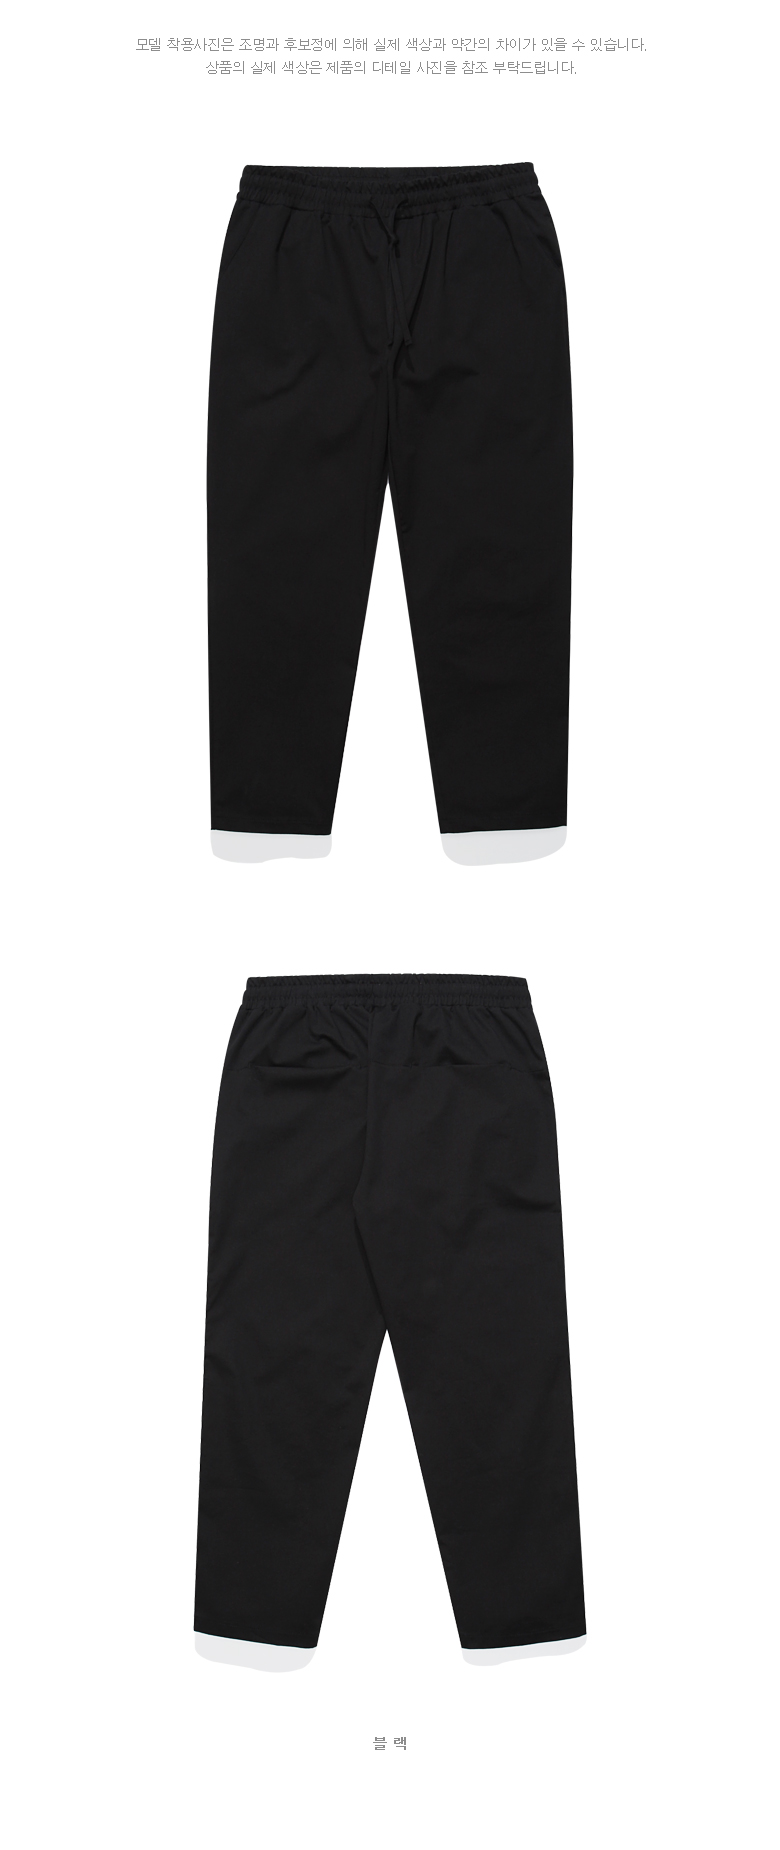 cropbangpants_detail_black_01.jpg